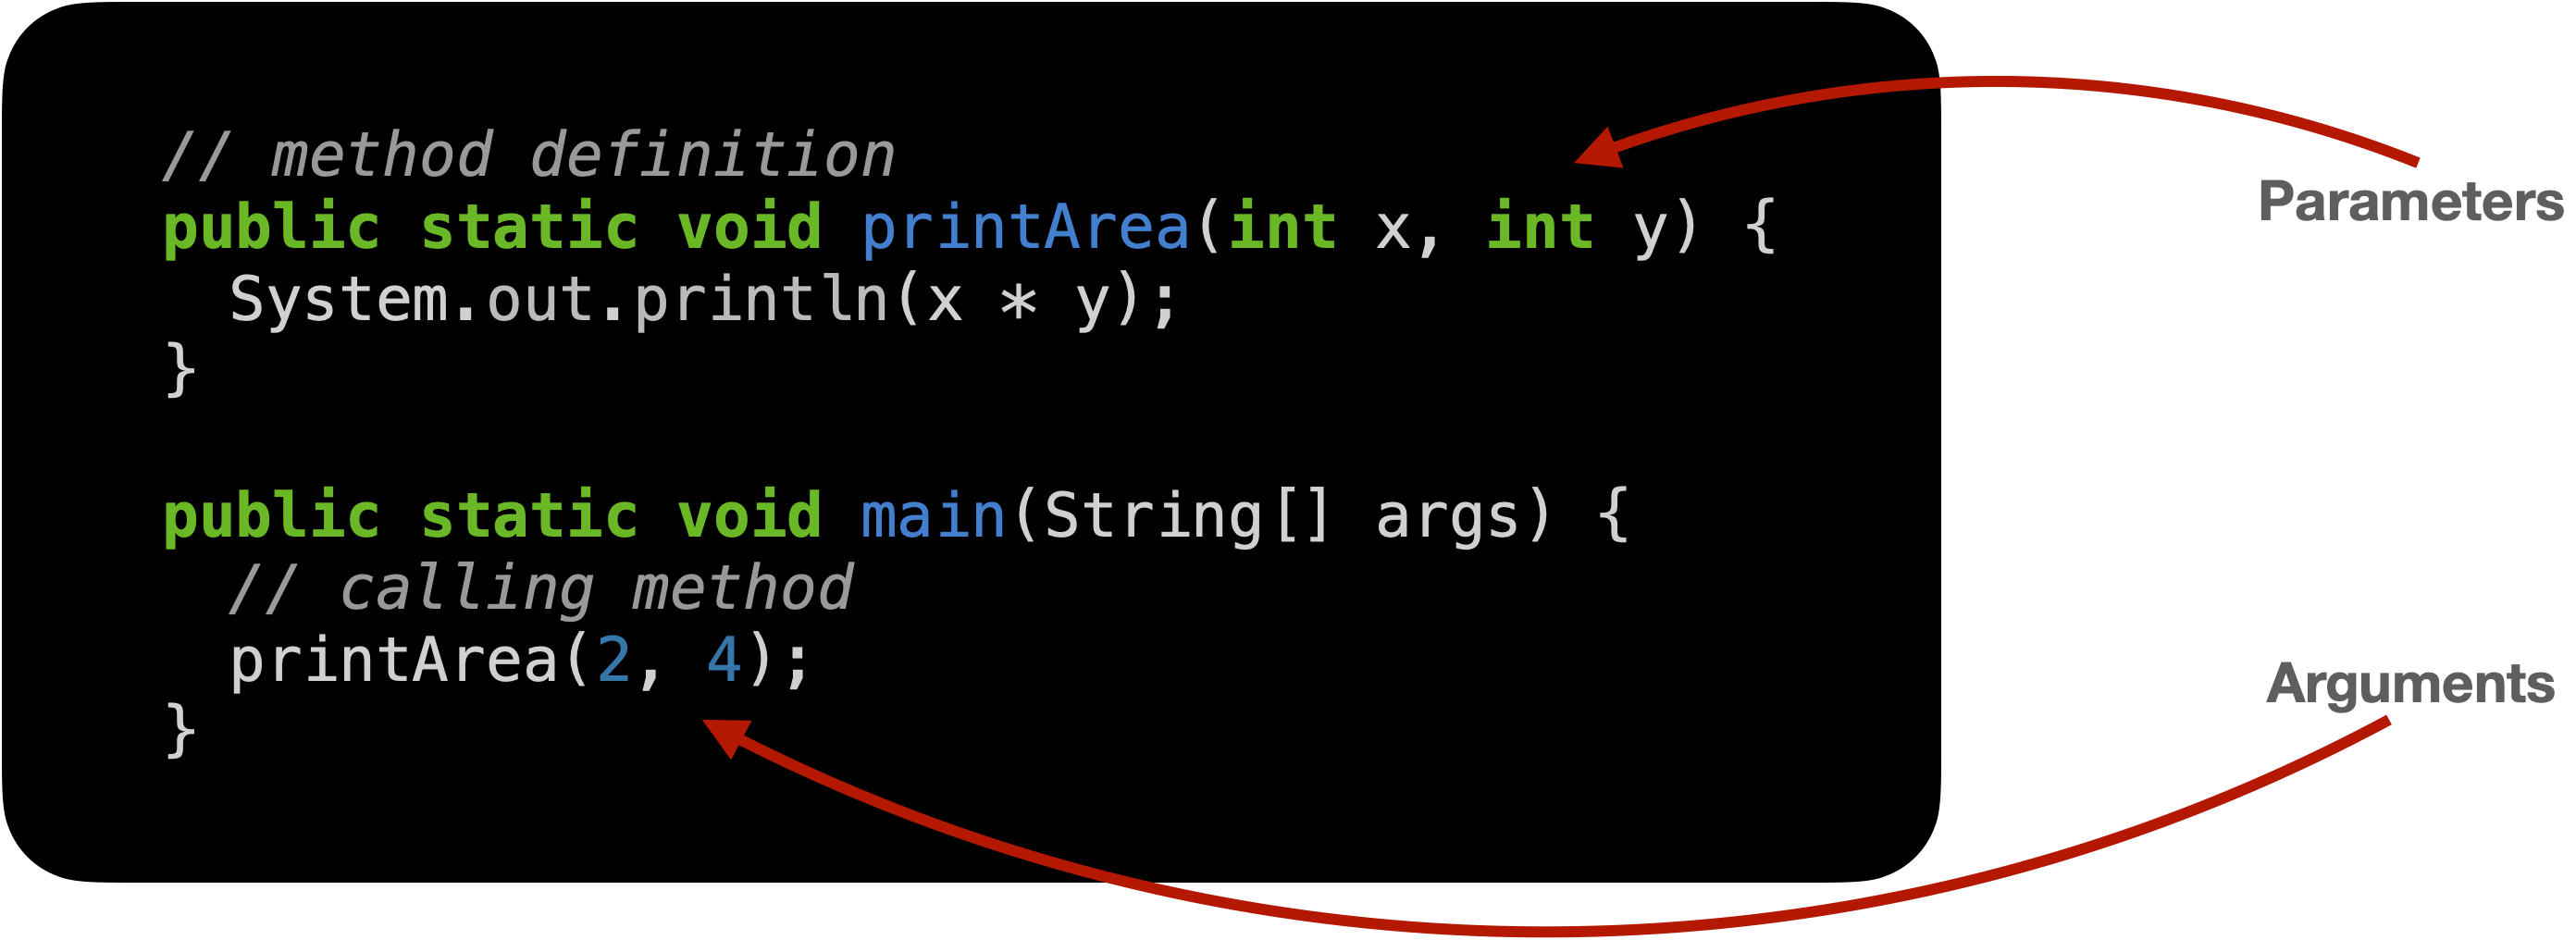 parameters and arguments in Java